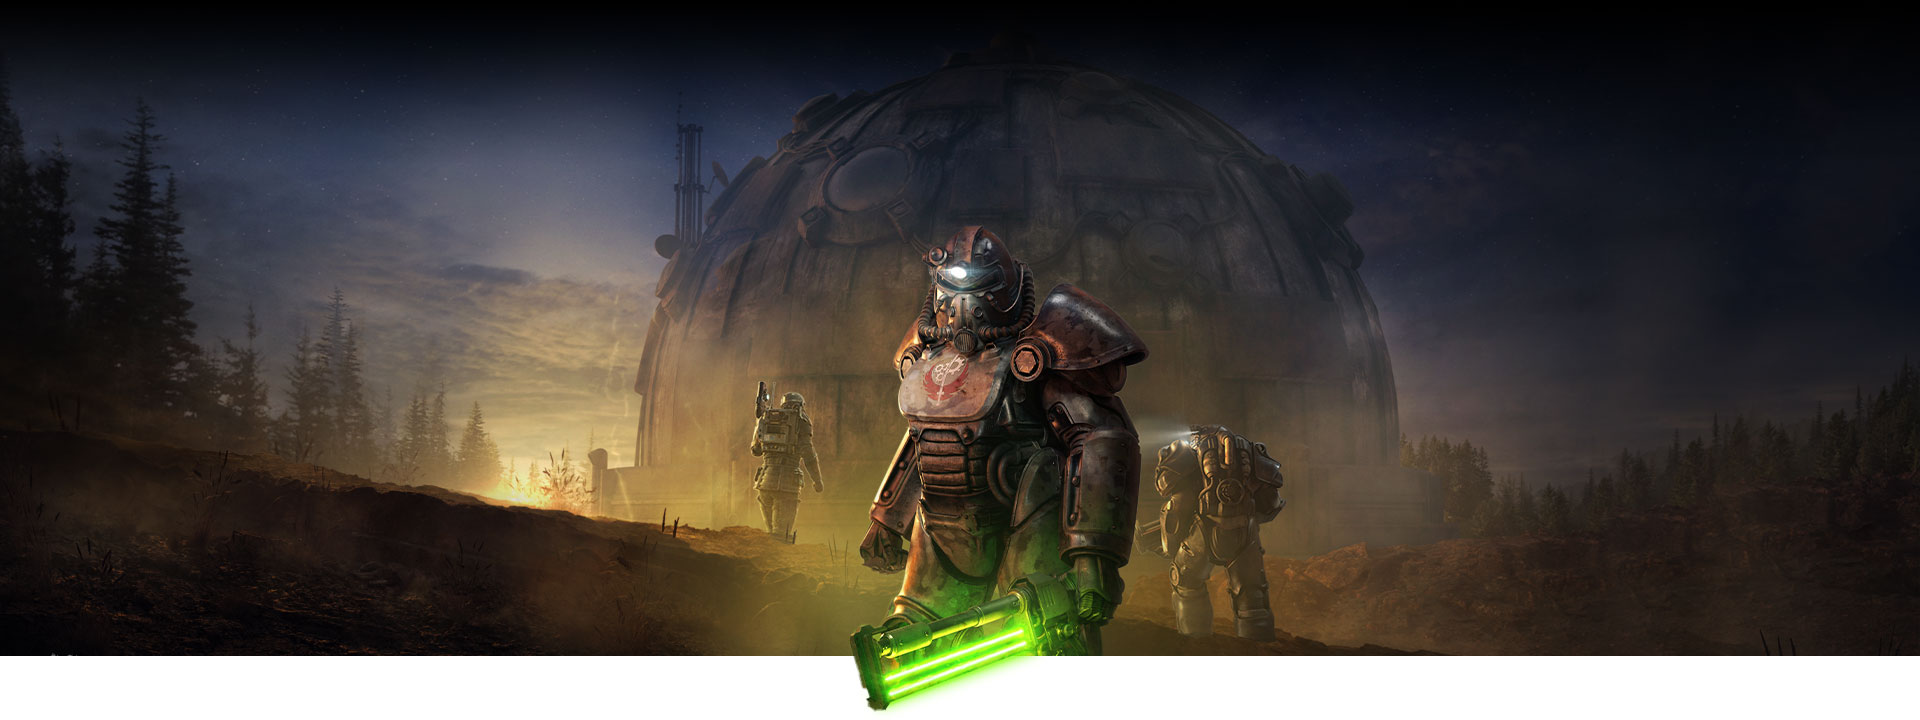 Character in Power Armour holds a glowing melee weapon in front of a large dome building